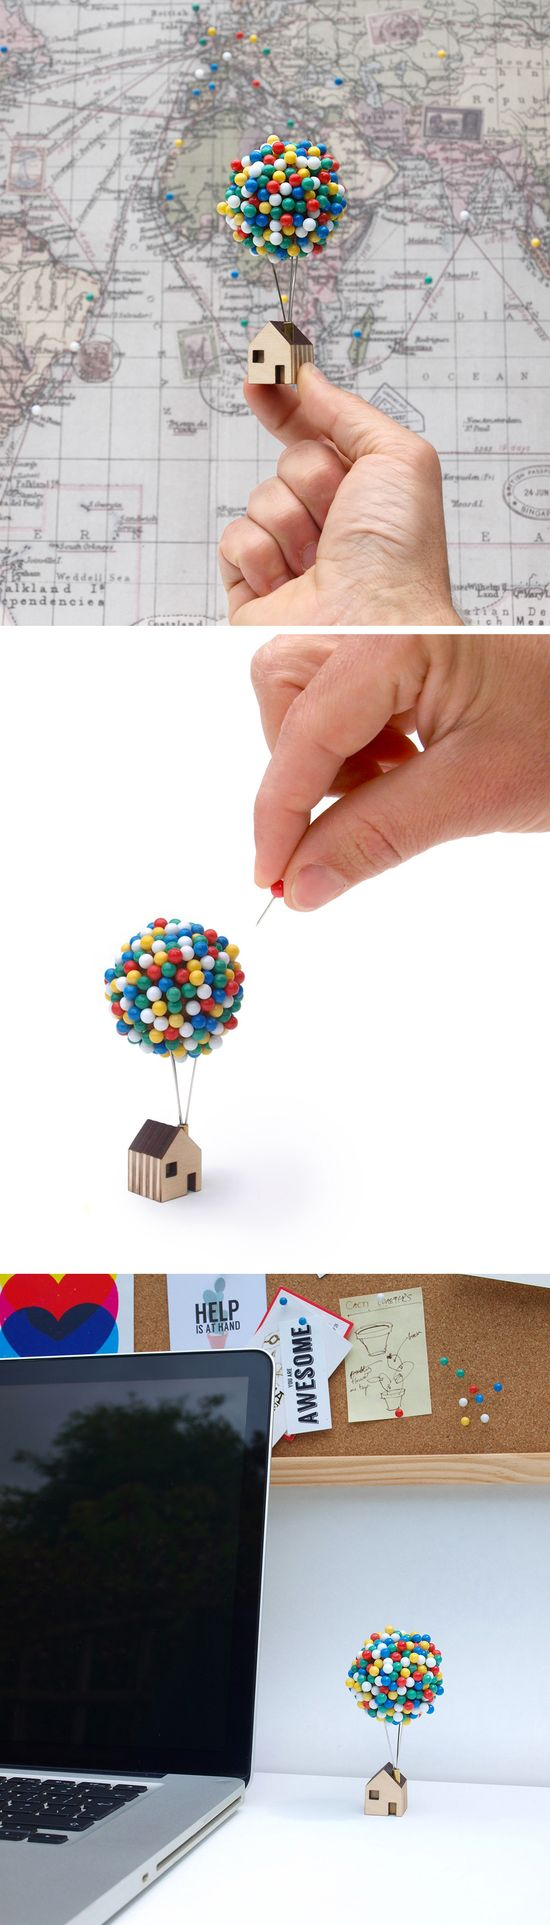 Balloon Pin House by